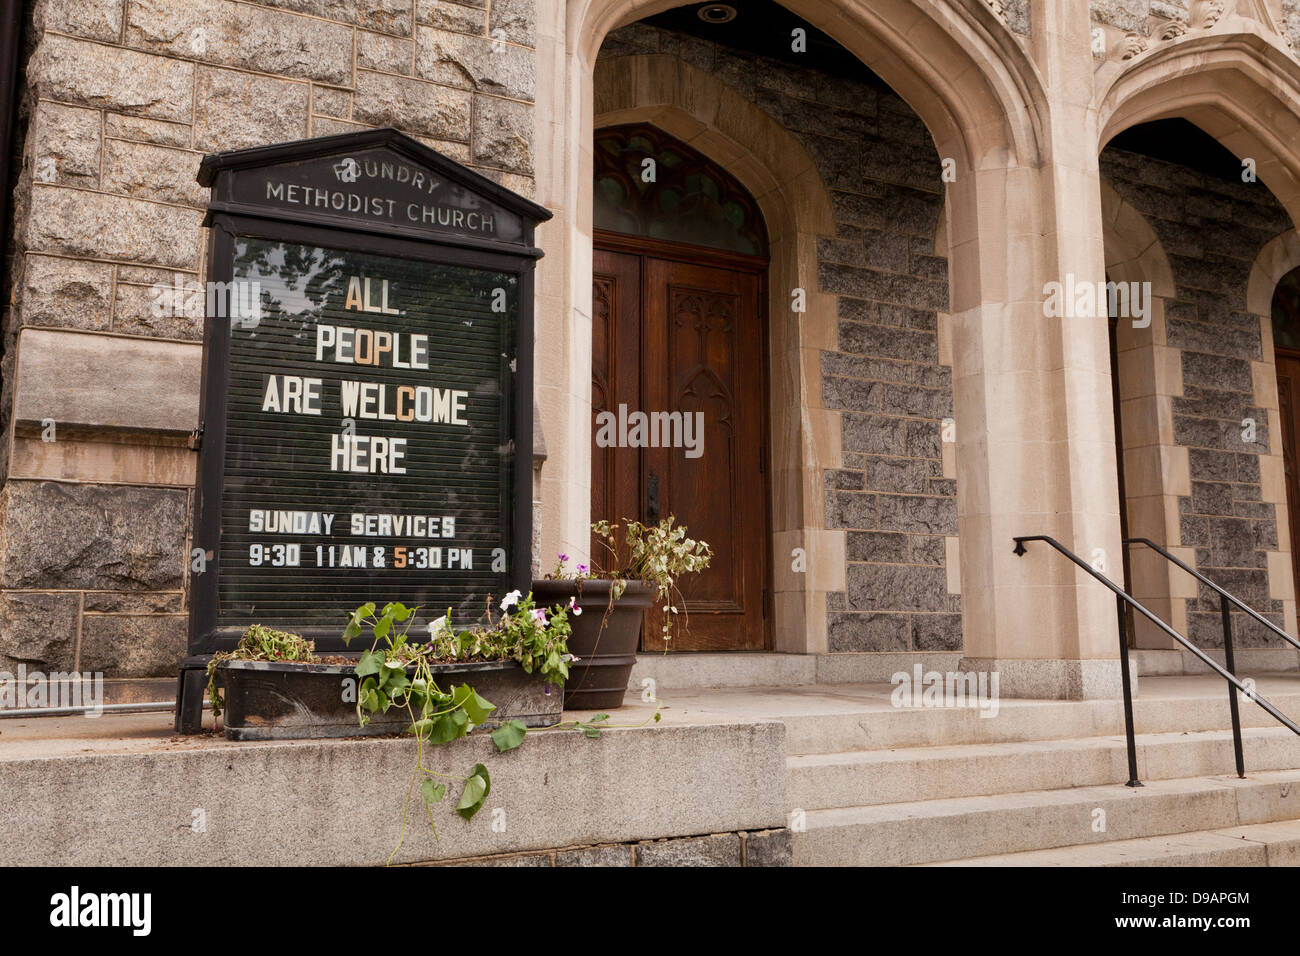 All people welcome church sign - Stock Image